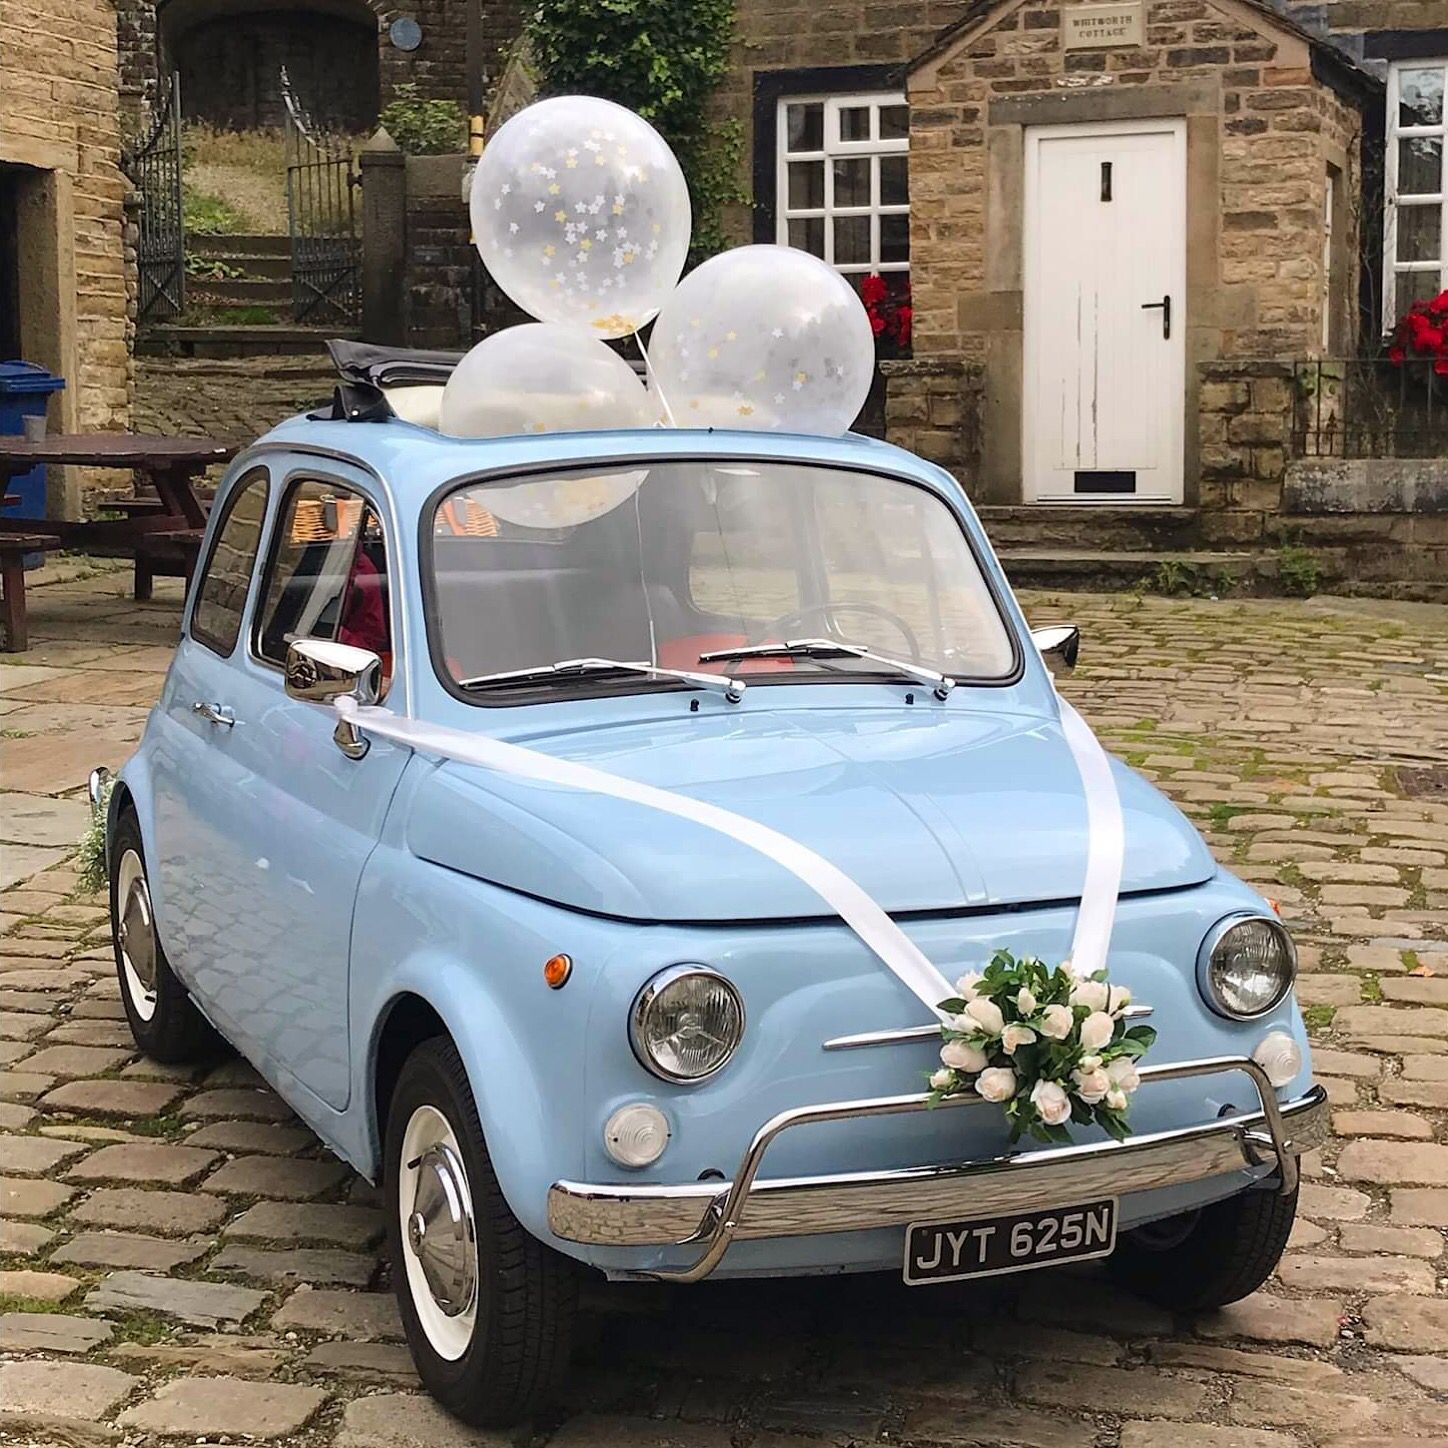 These confetti balloons made a great addition fiat500